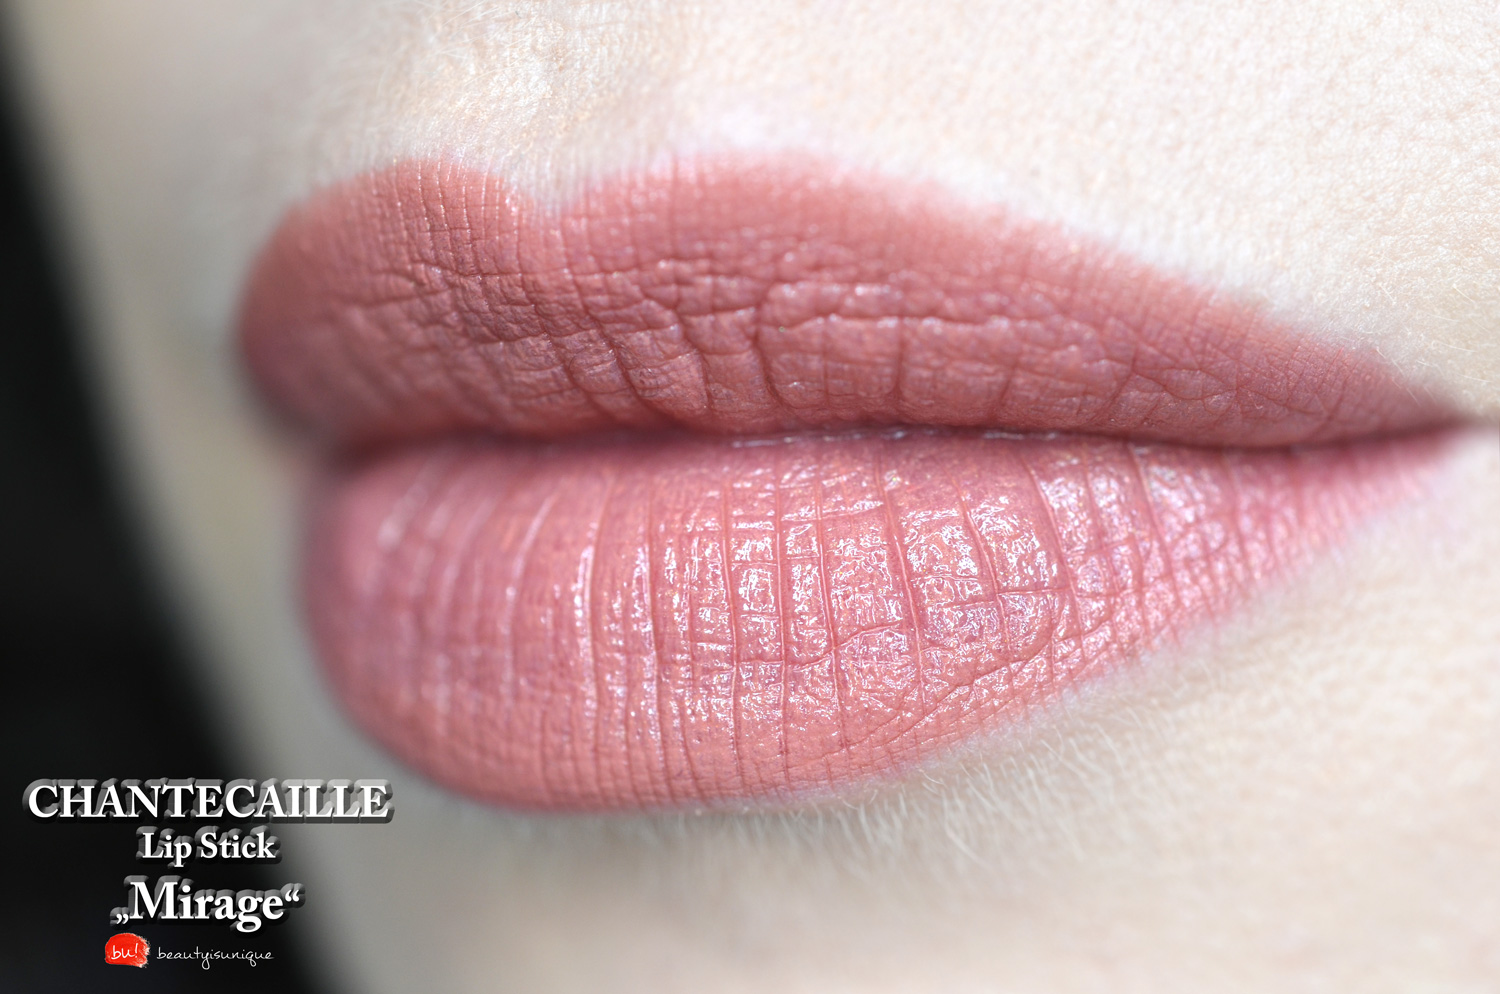 Chantecaille-lip-stick-mirage-review